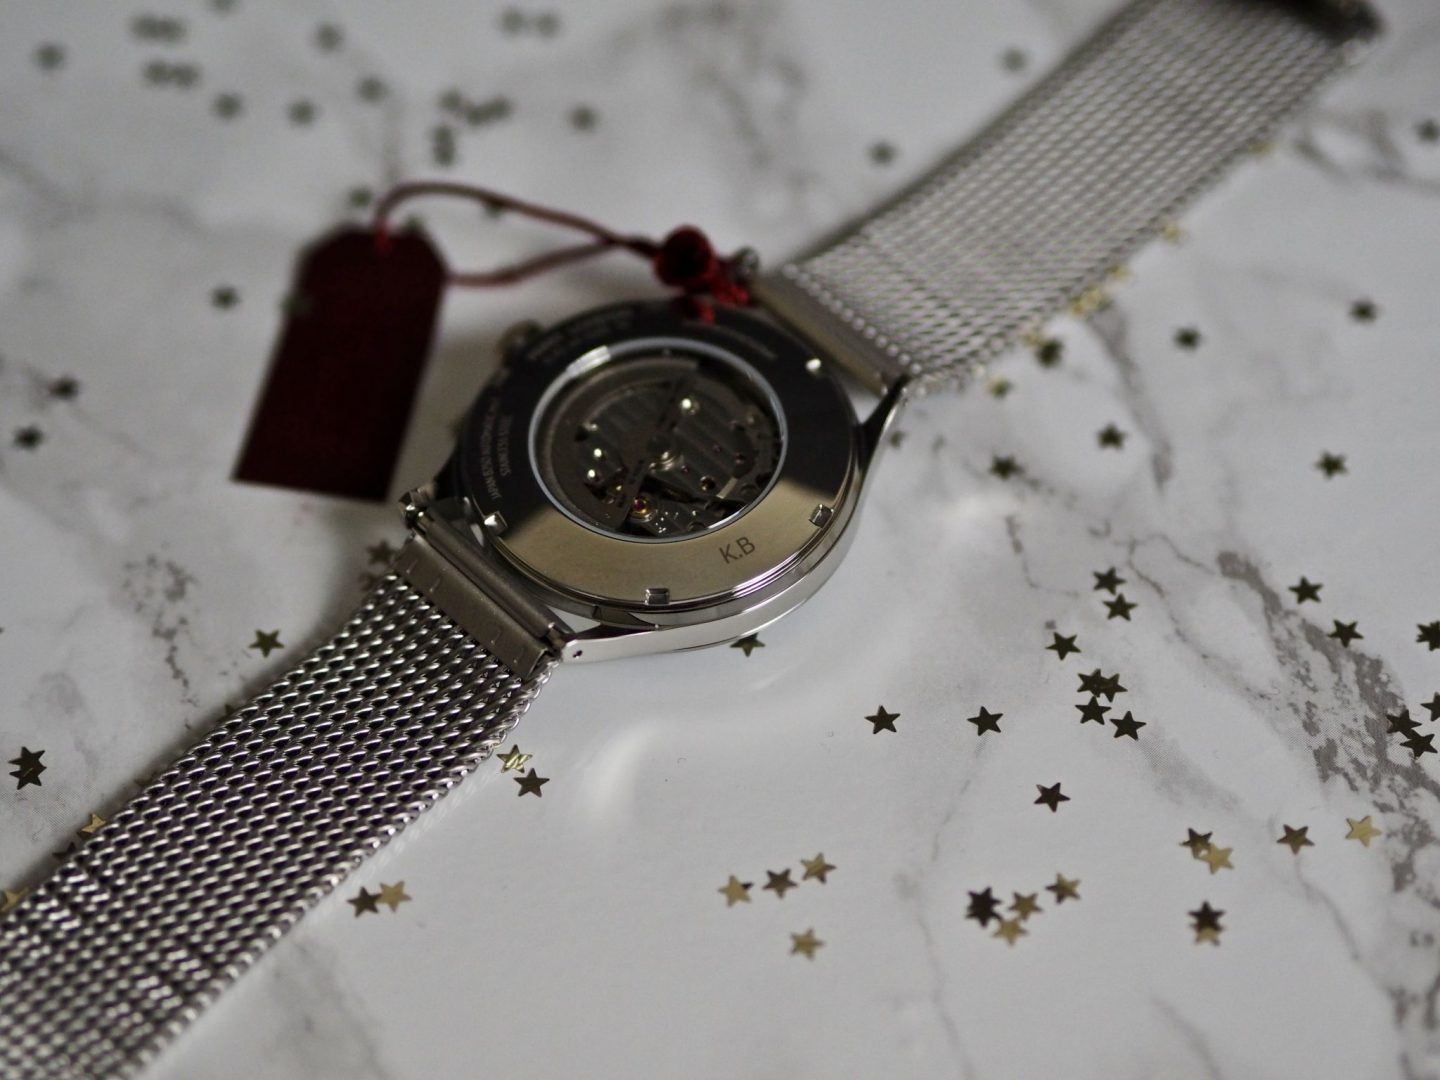 Laura Byrnes, Lauras little locket, gift guide, henry watch